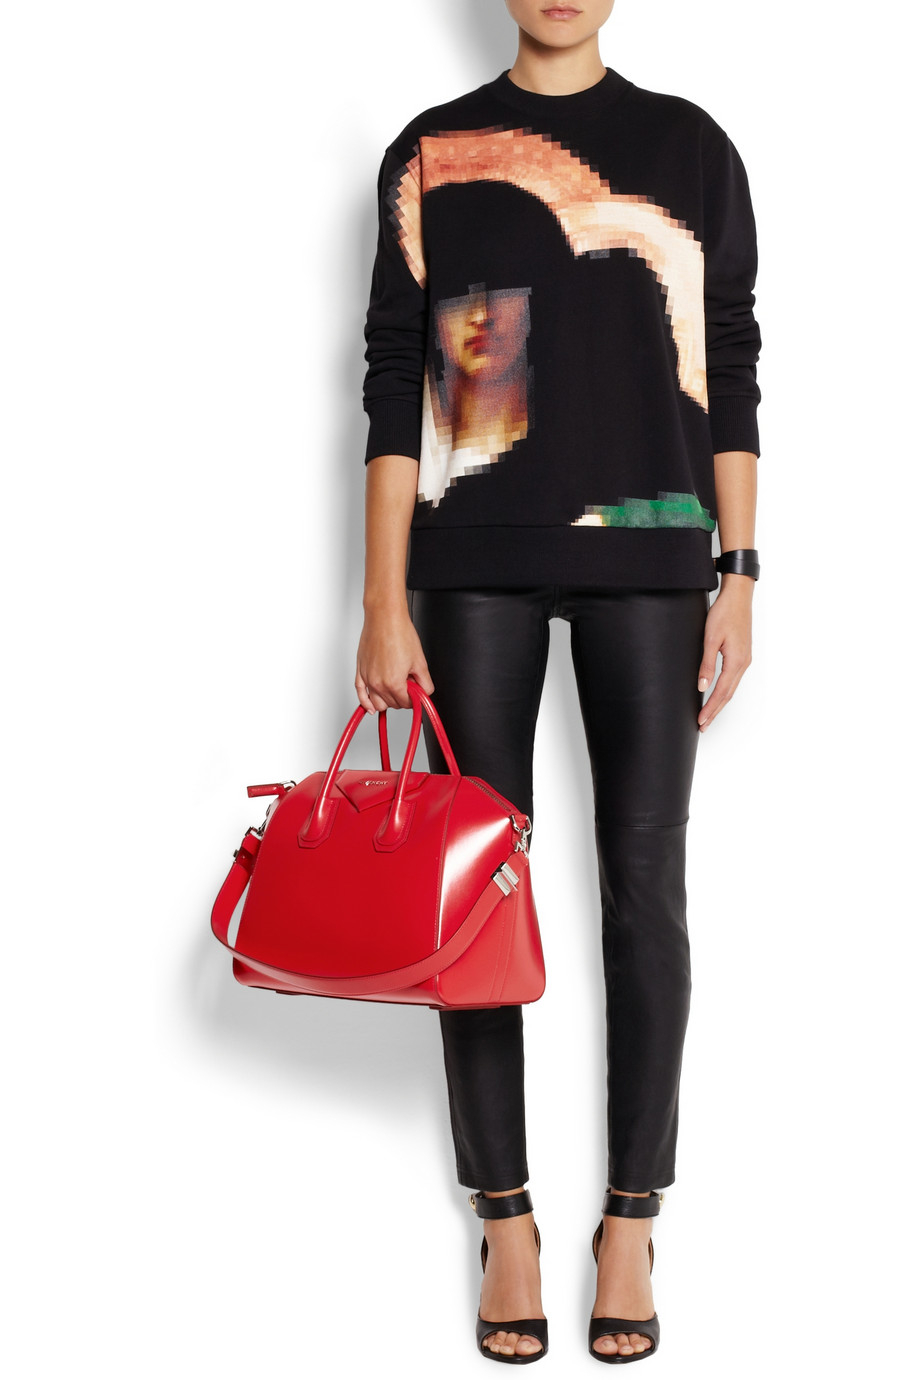 a07600549f Lyst - Givenchy Medium Antigona Bag in Red Leather in Red